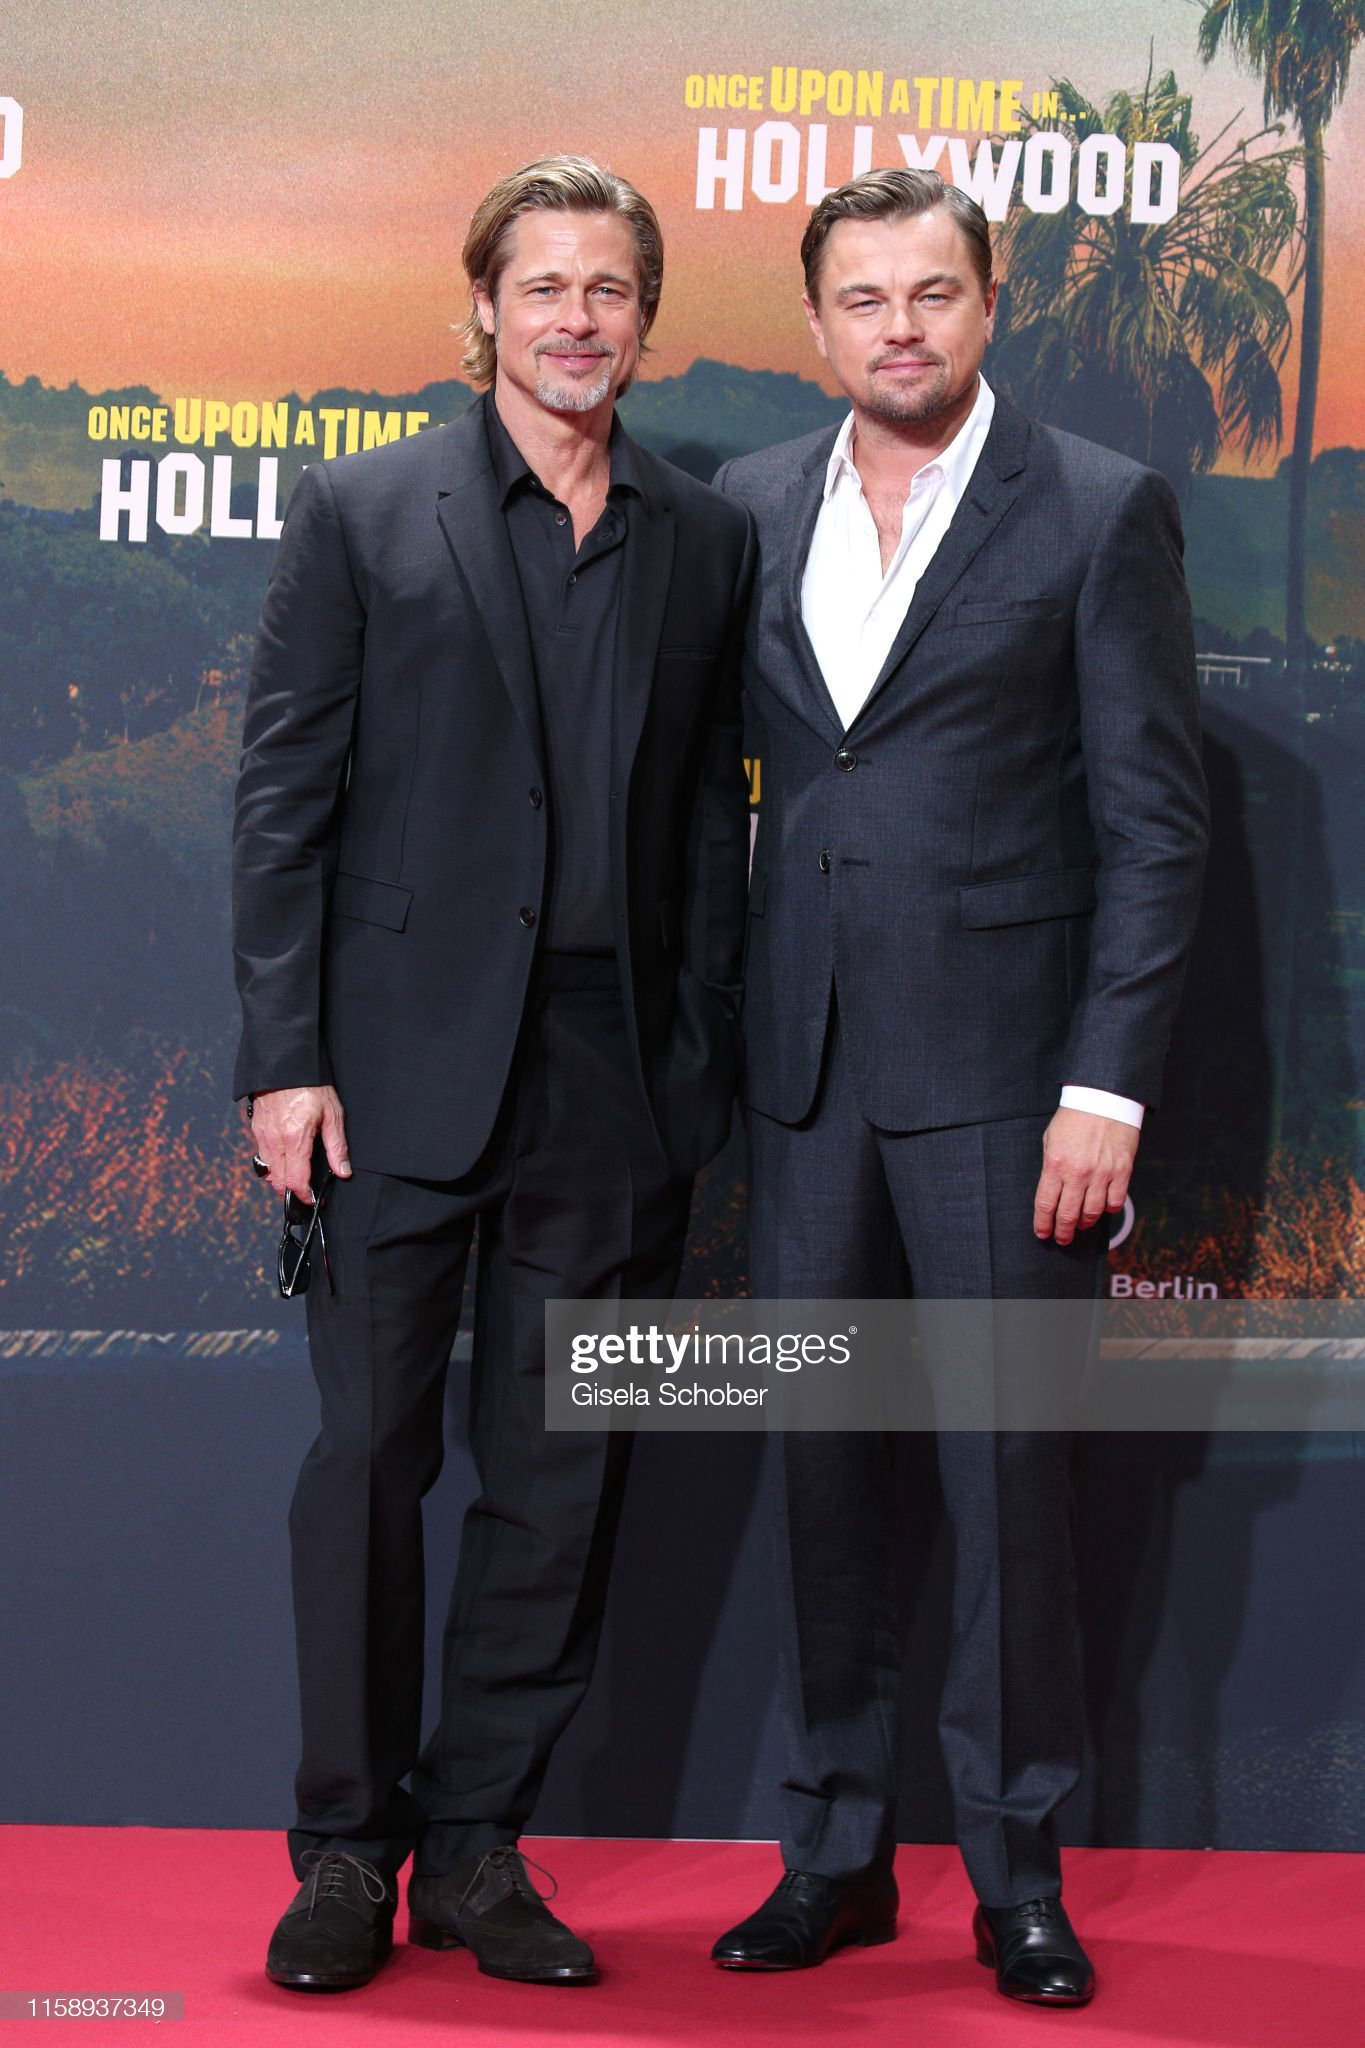 ¿Cuánto mide Brad Pitt? - Altura - Real height - Página 3 Brad-pitt-and-leonardo-dicaprio-during-the-premiere-of-once-upon-a-picture-id1158937349?s=2048x2048